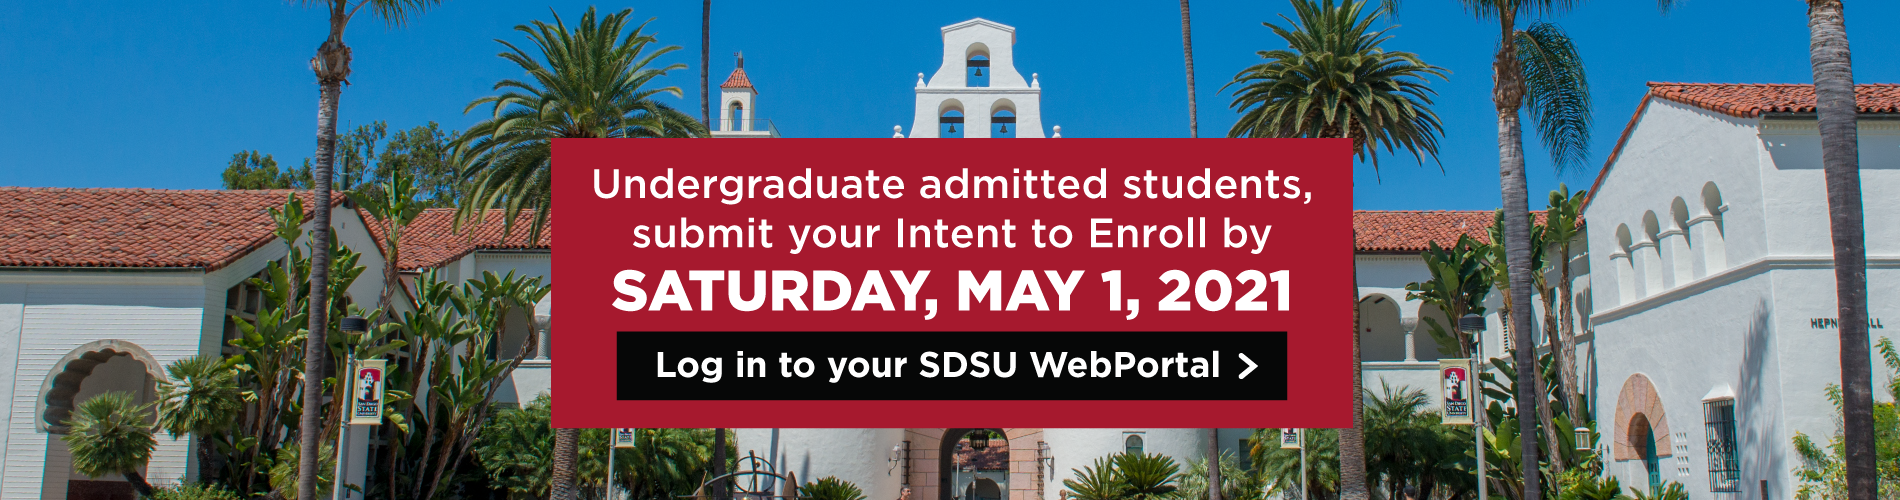 Undergraduate admitted students submit your intent to enroll by Saturday, Mat 1, 2021. Log in to your SDSU WebPortal.